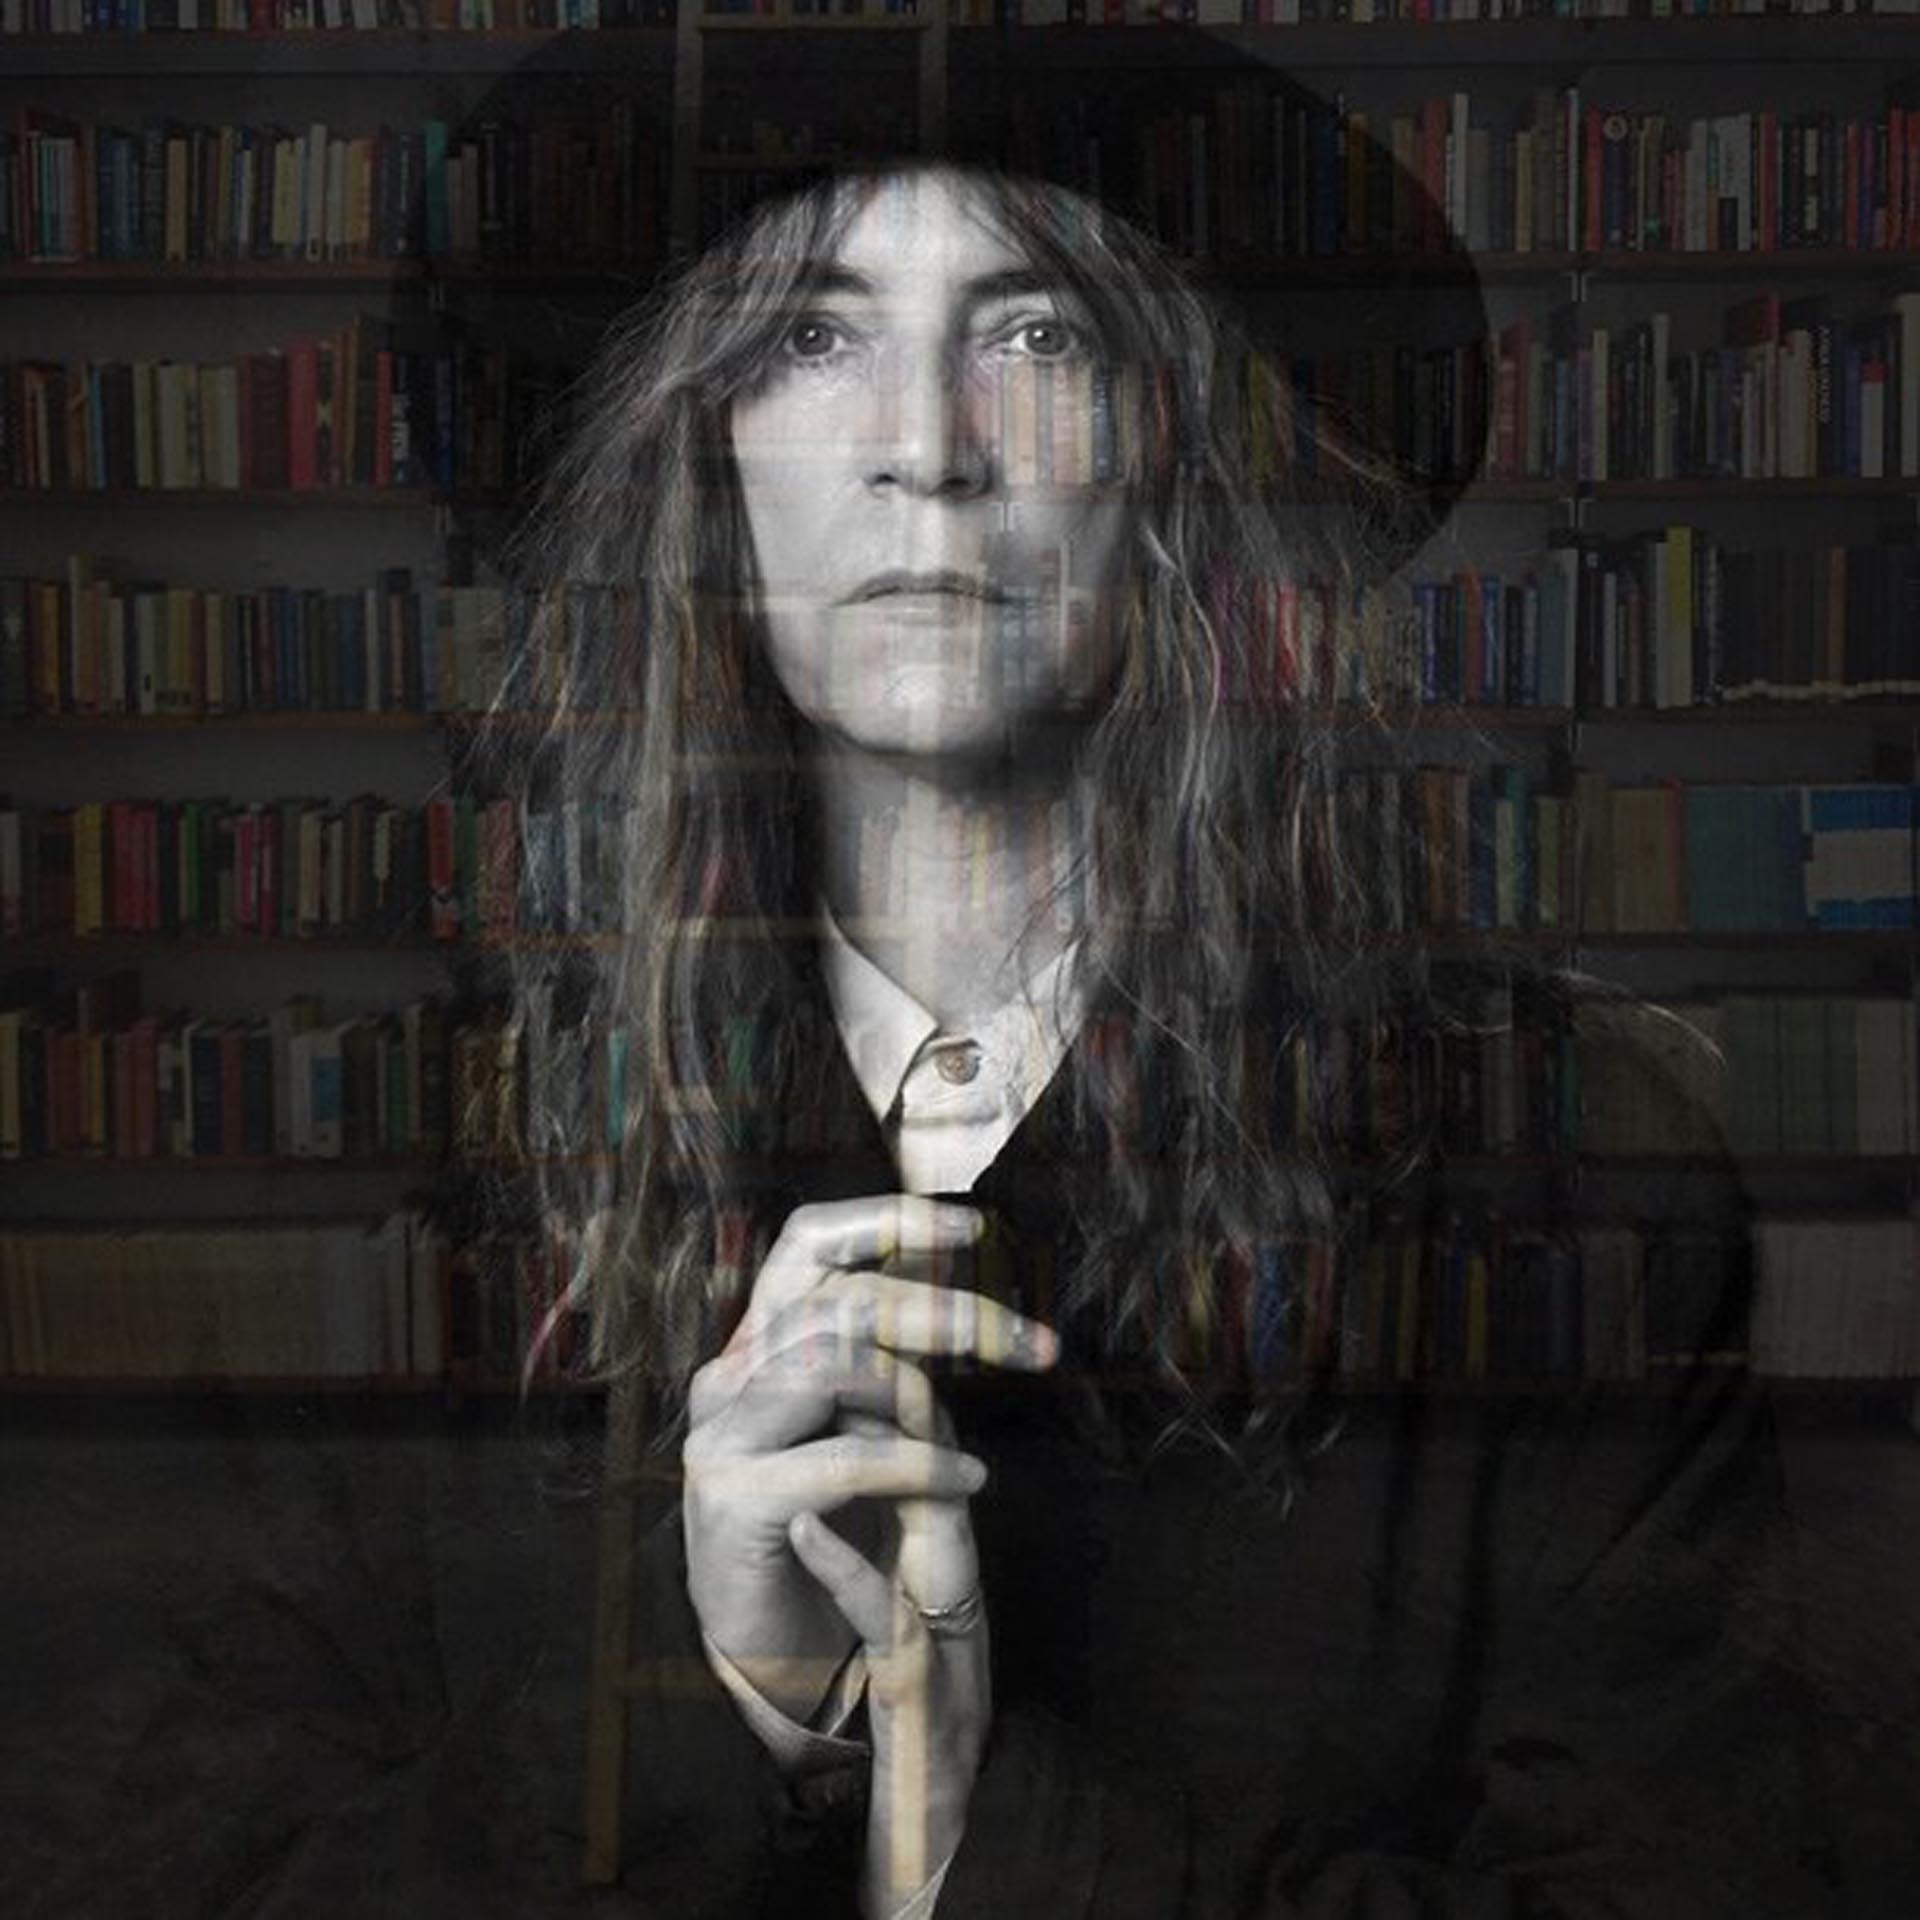 Patti Smith , una vida repleta de libros